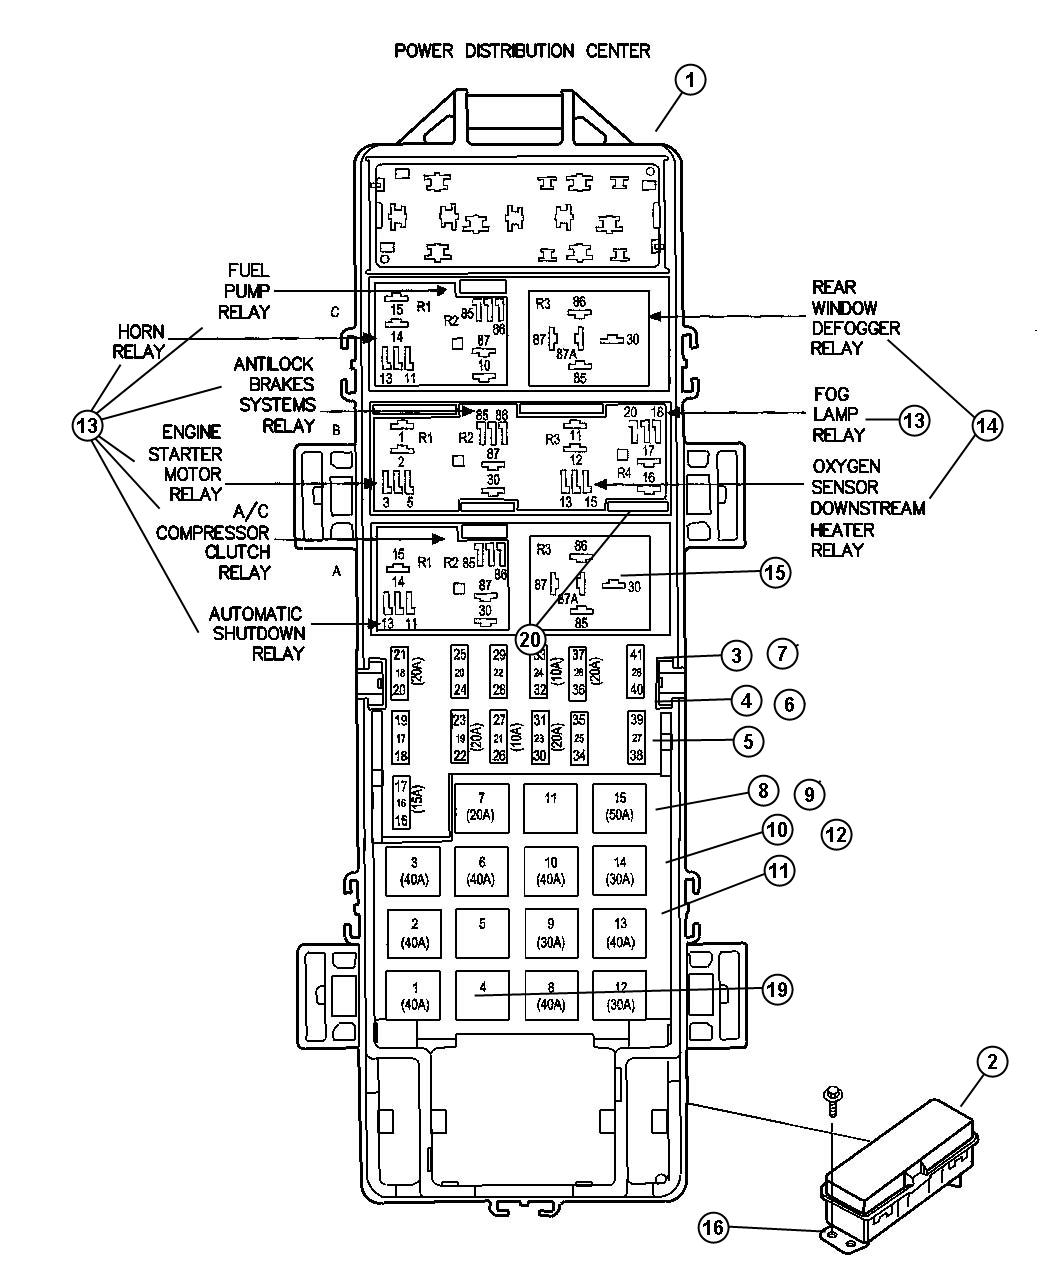 Jeep Liberty Fuse Diagram